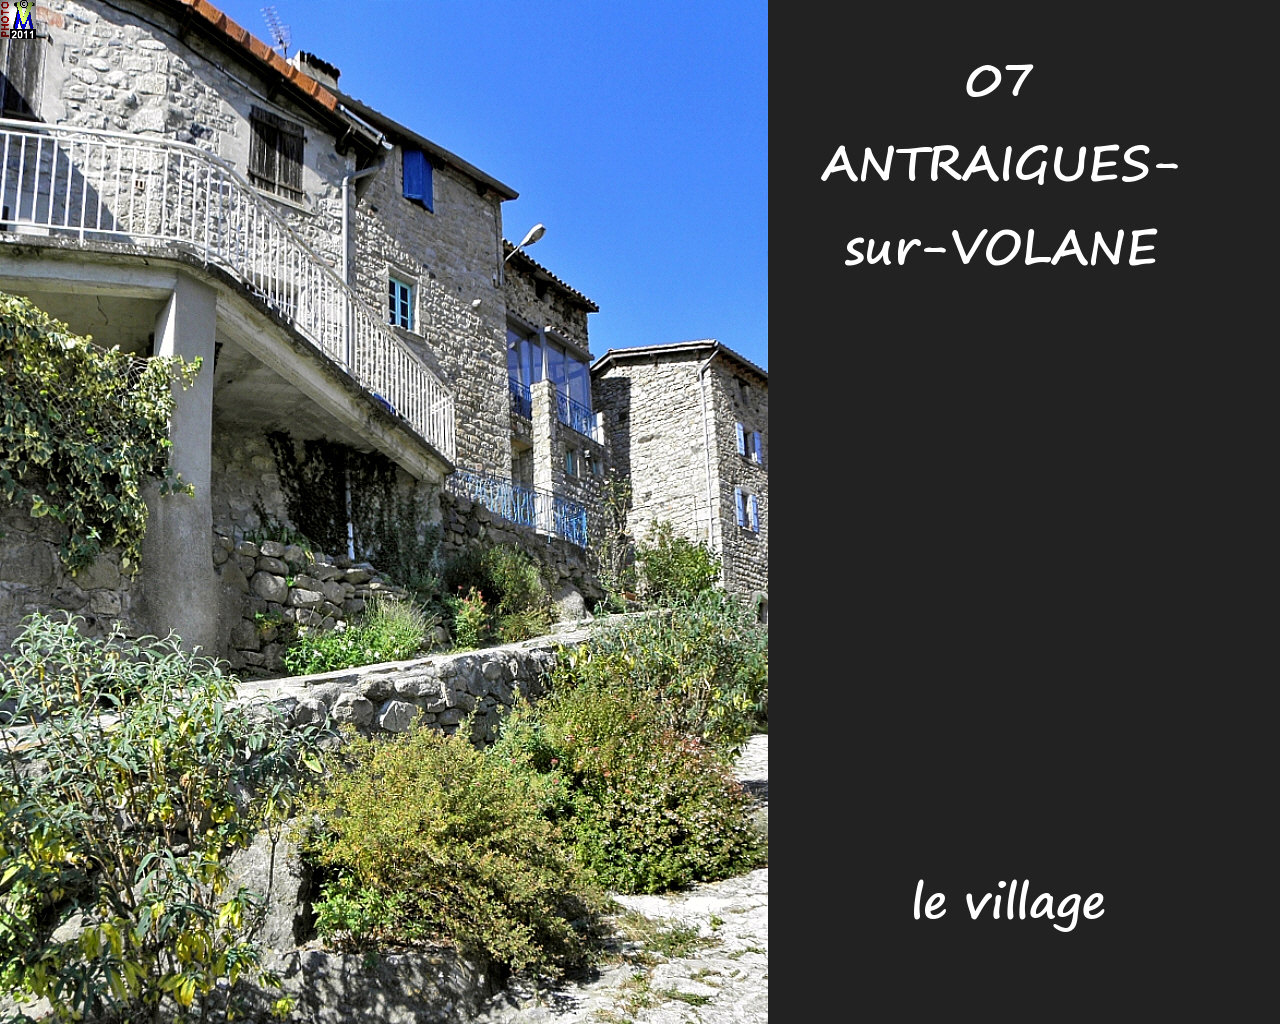 07ANTRAIGUES-VOLANE_village_124.jpg